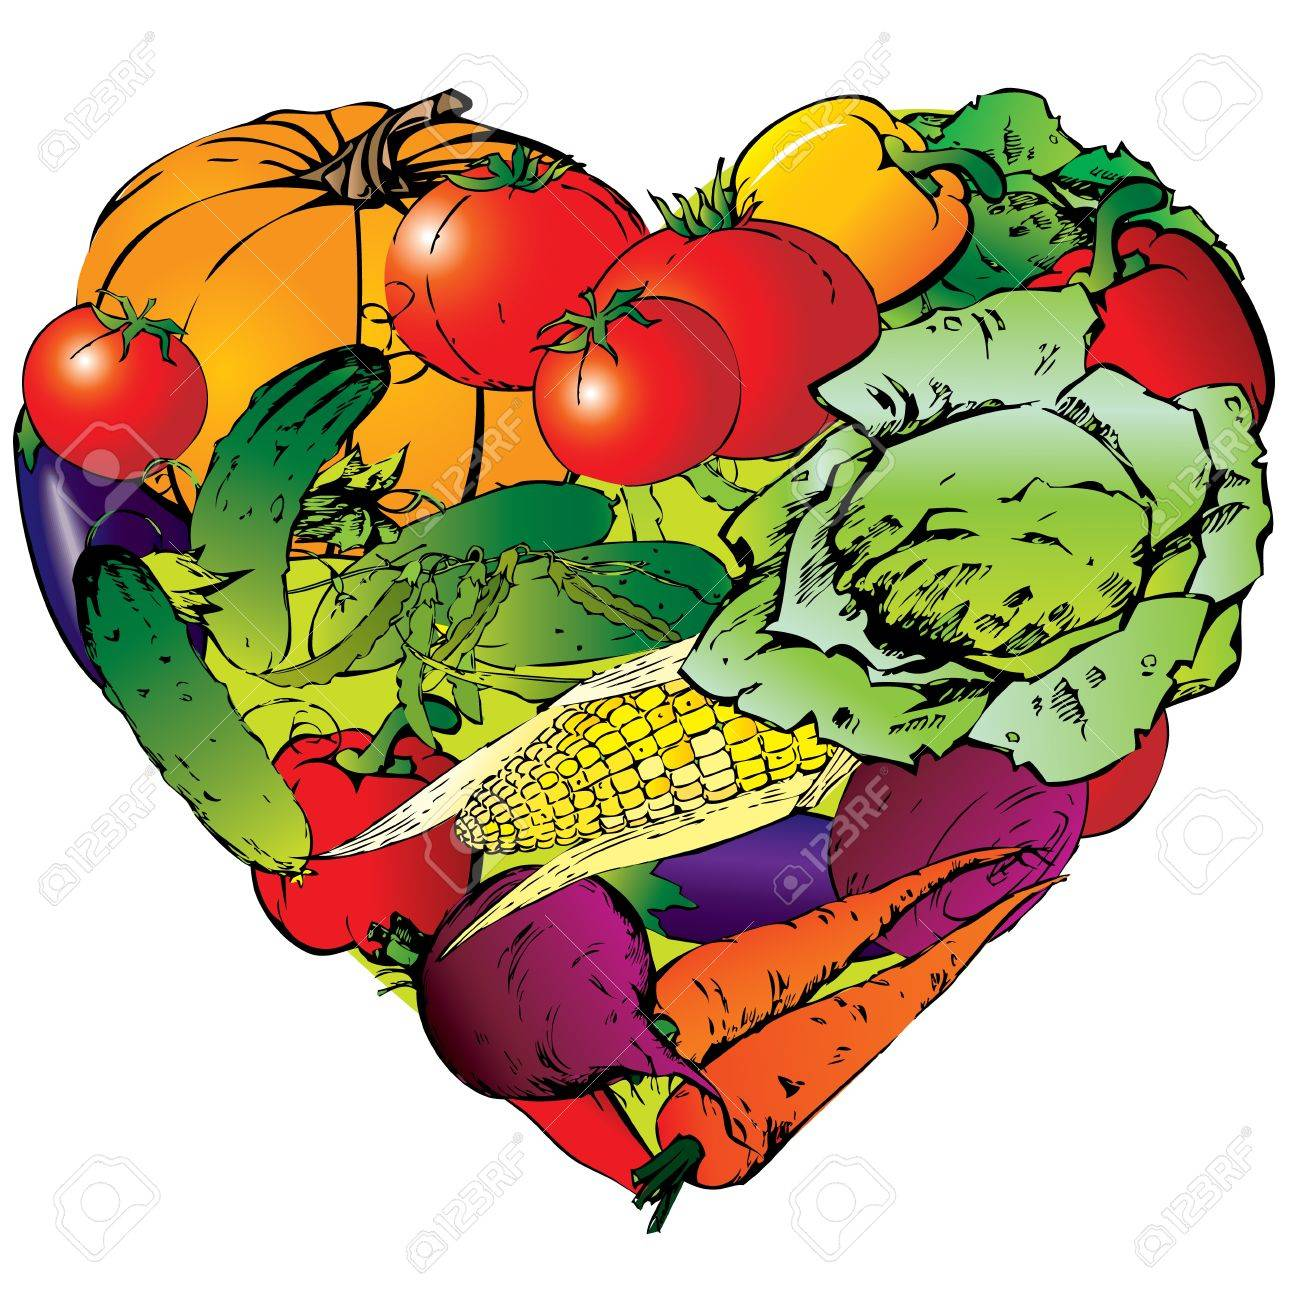 3,572 Vegetable Heart Stock Vector Illustration And Royalty Free ...